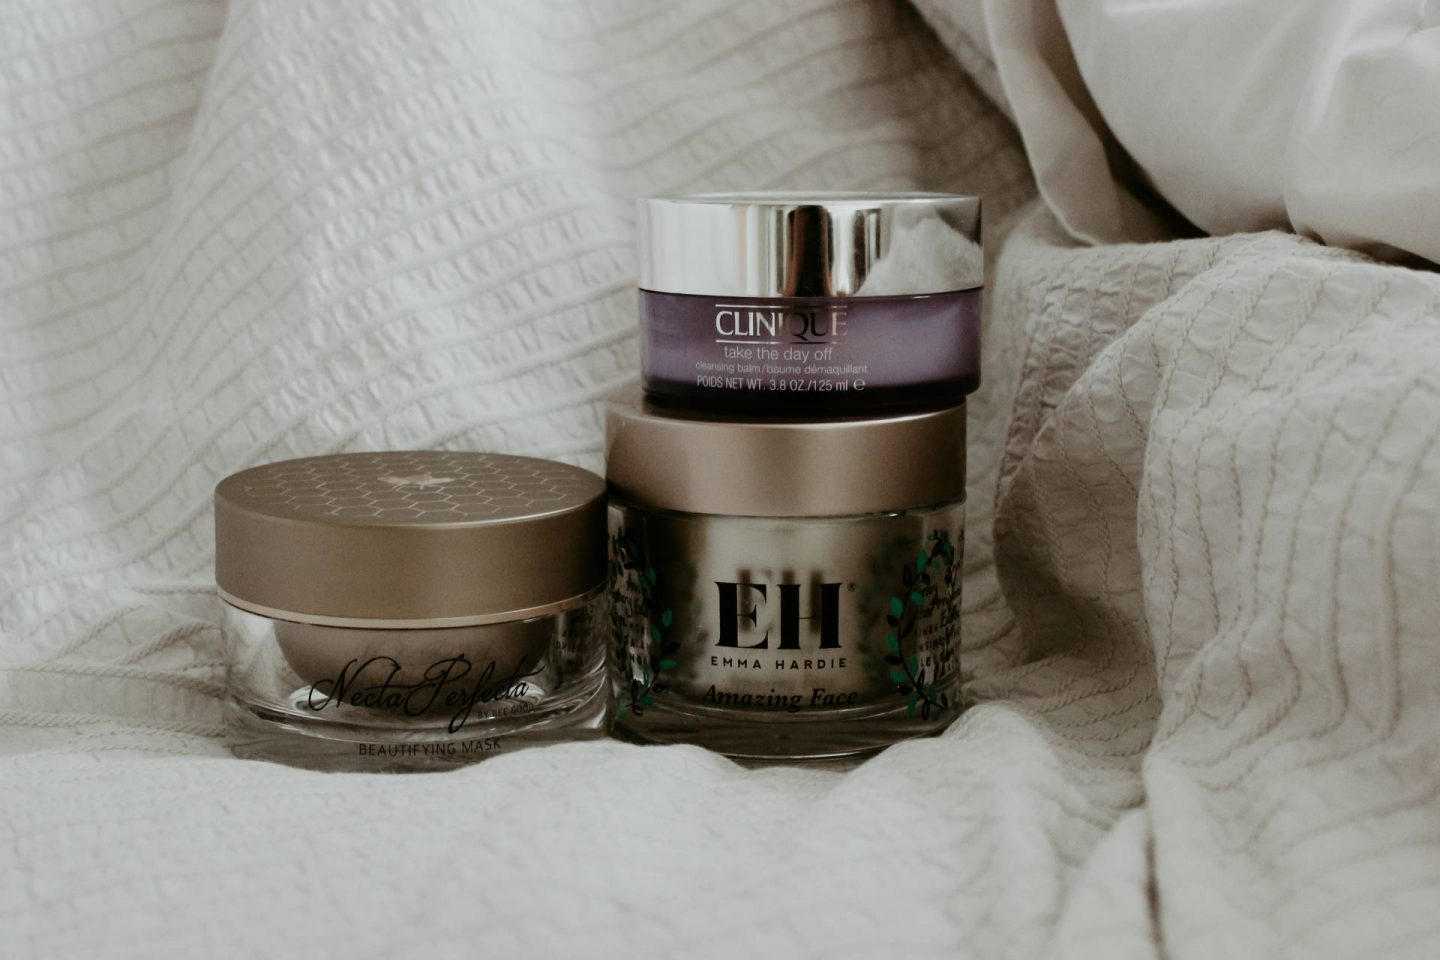 Cleansing balm stacked on white bedding